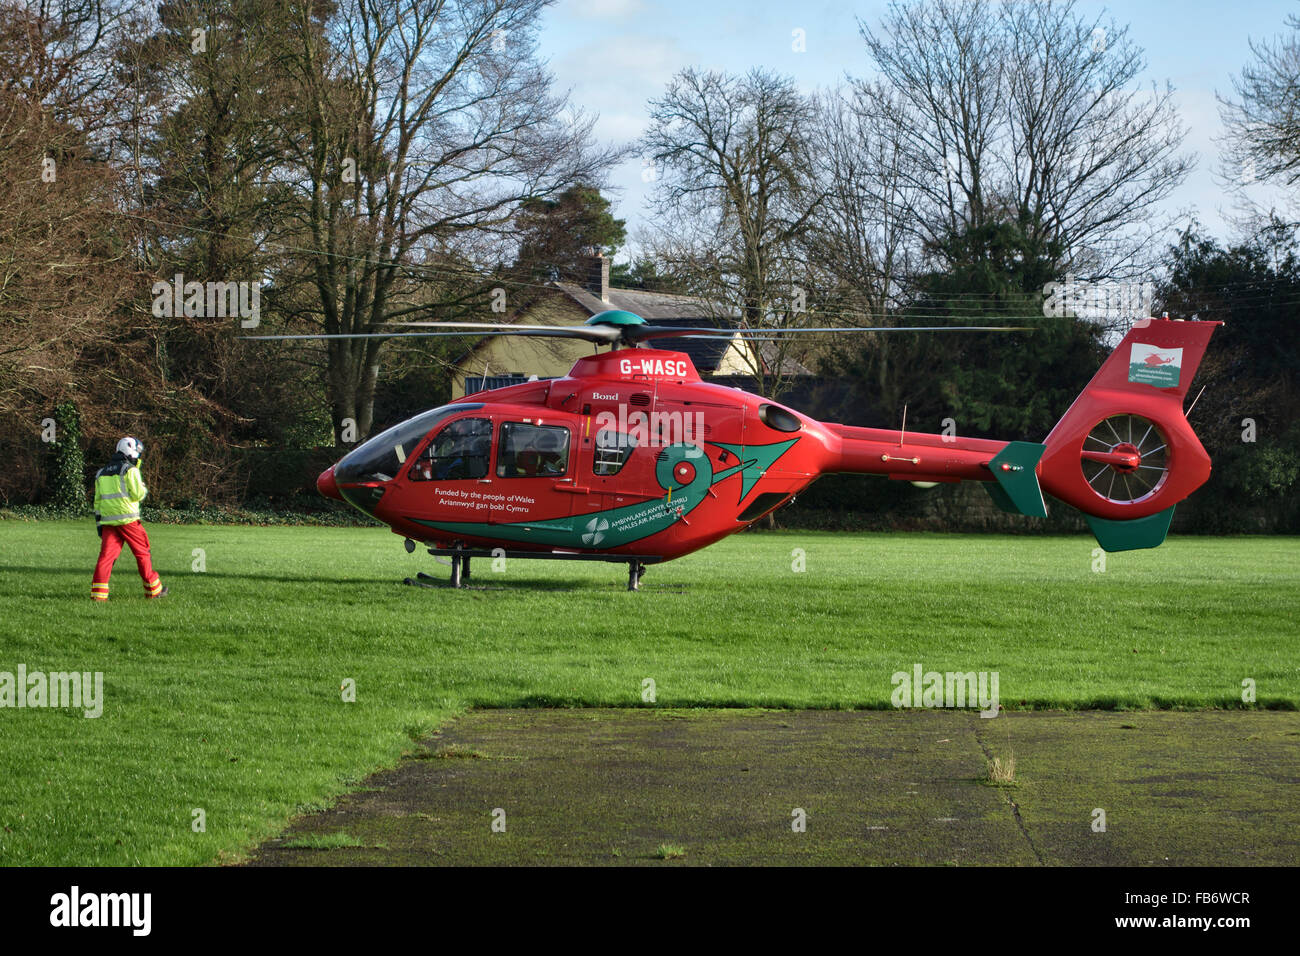 Presteigne, Powys, UK. The Wales Air Ambulance attends an incident in the town. A Eurocopter EC135 on the school - Stock Image